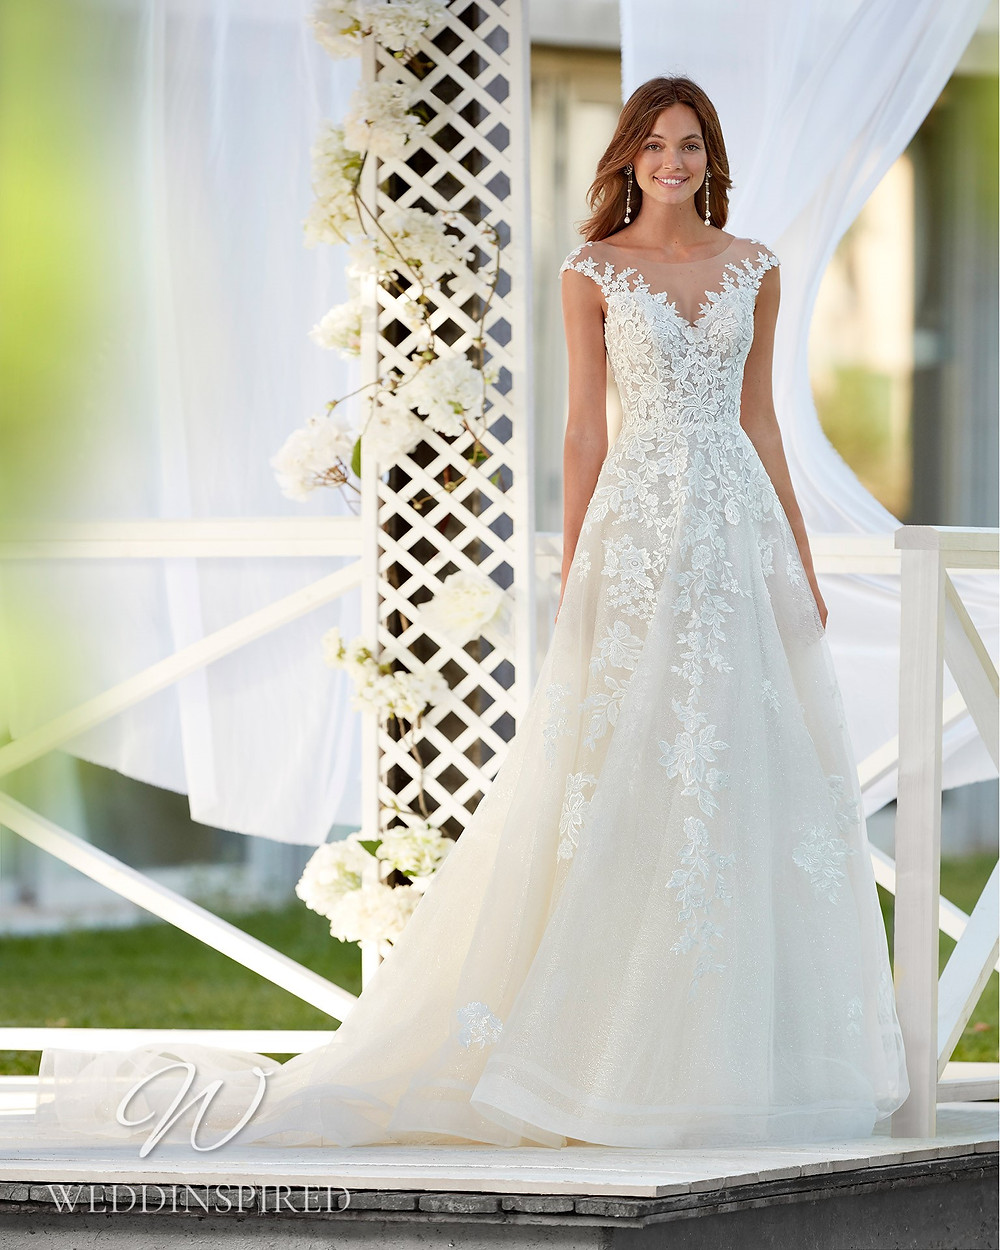 An Aire Barcelona 2021 off the shoulder lace A-line wedding dress